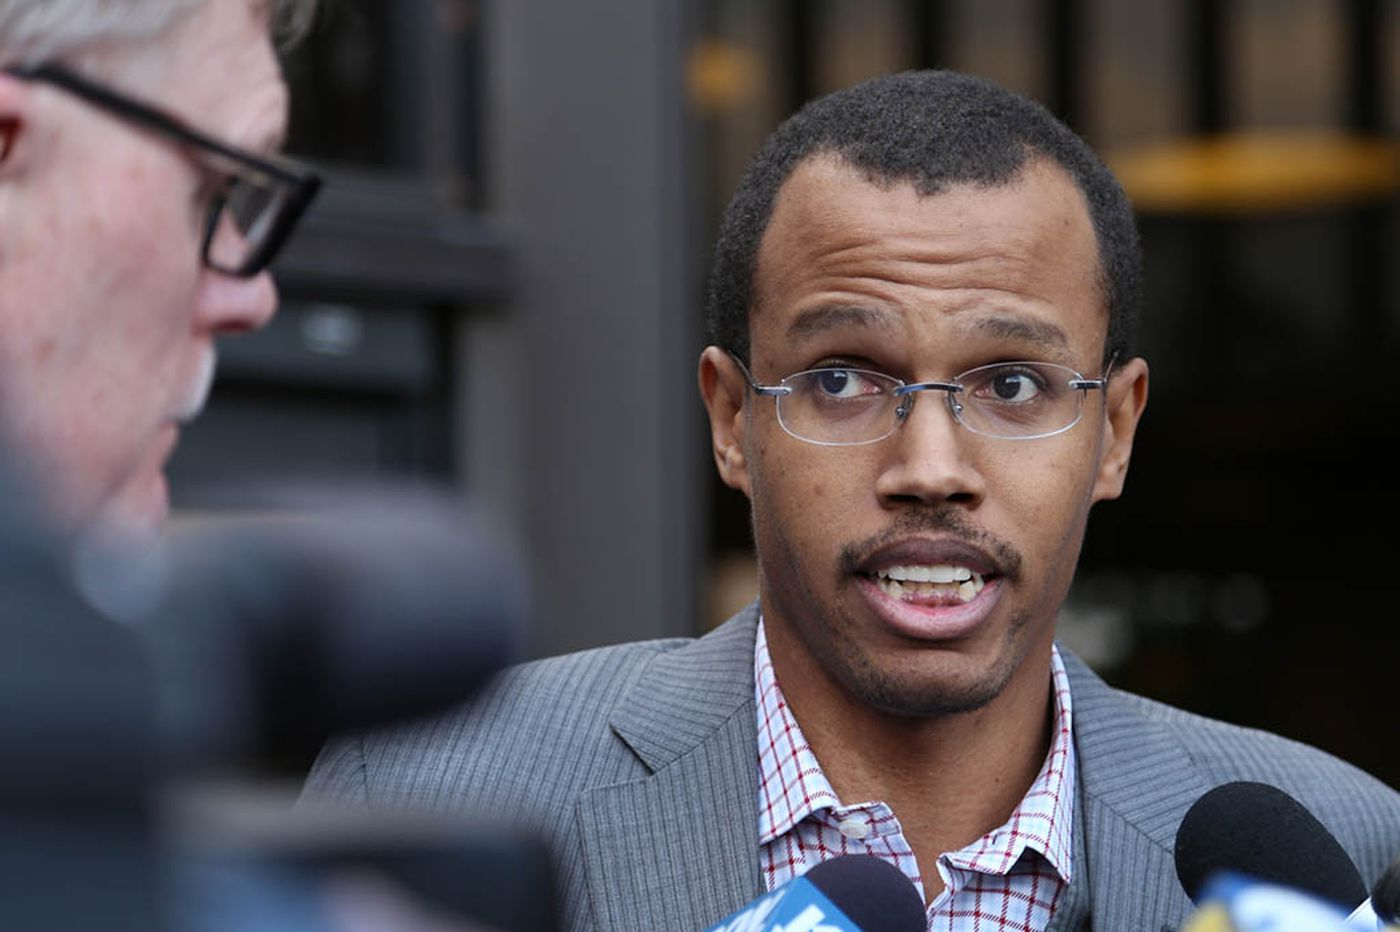 3rd Circuit dismisses Chaka Fattah Jr.'s appeal